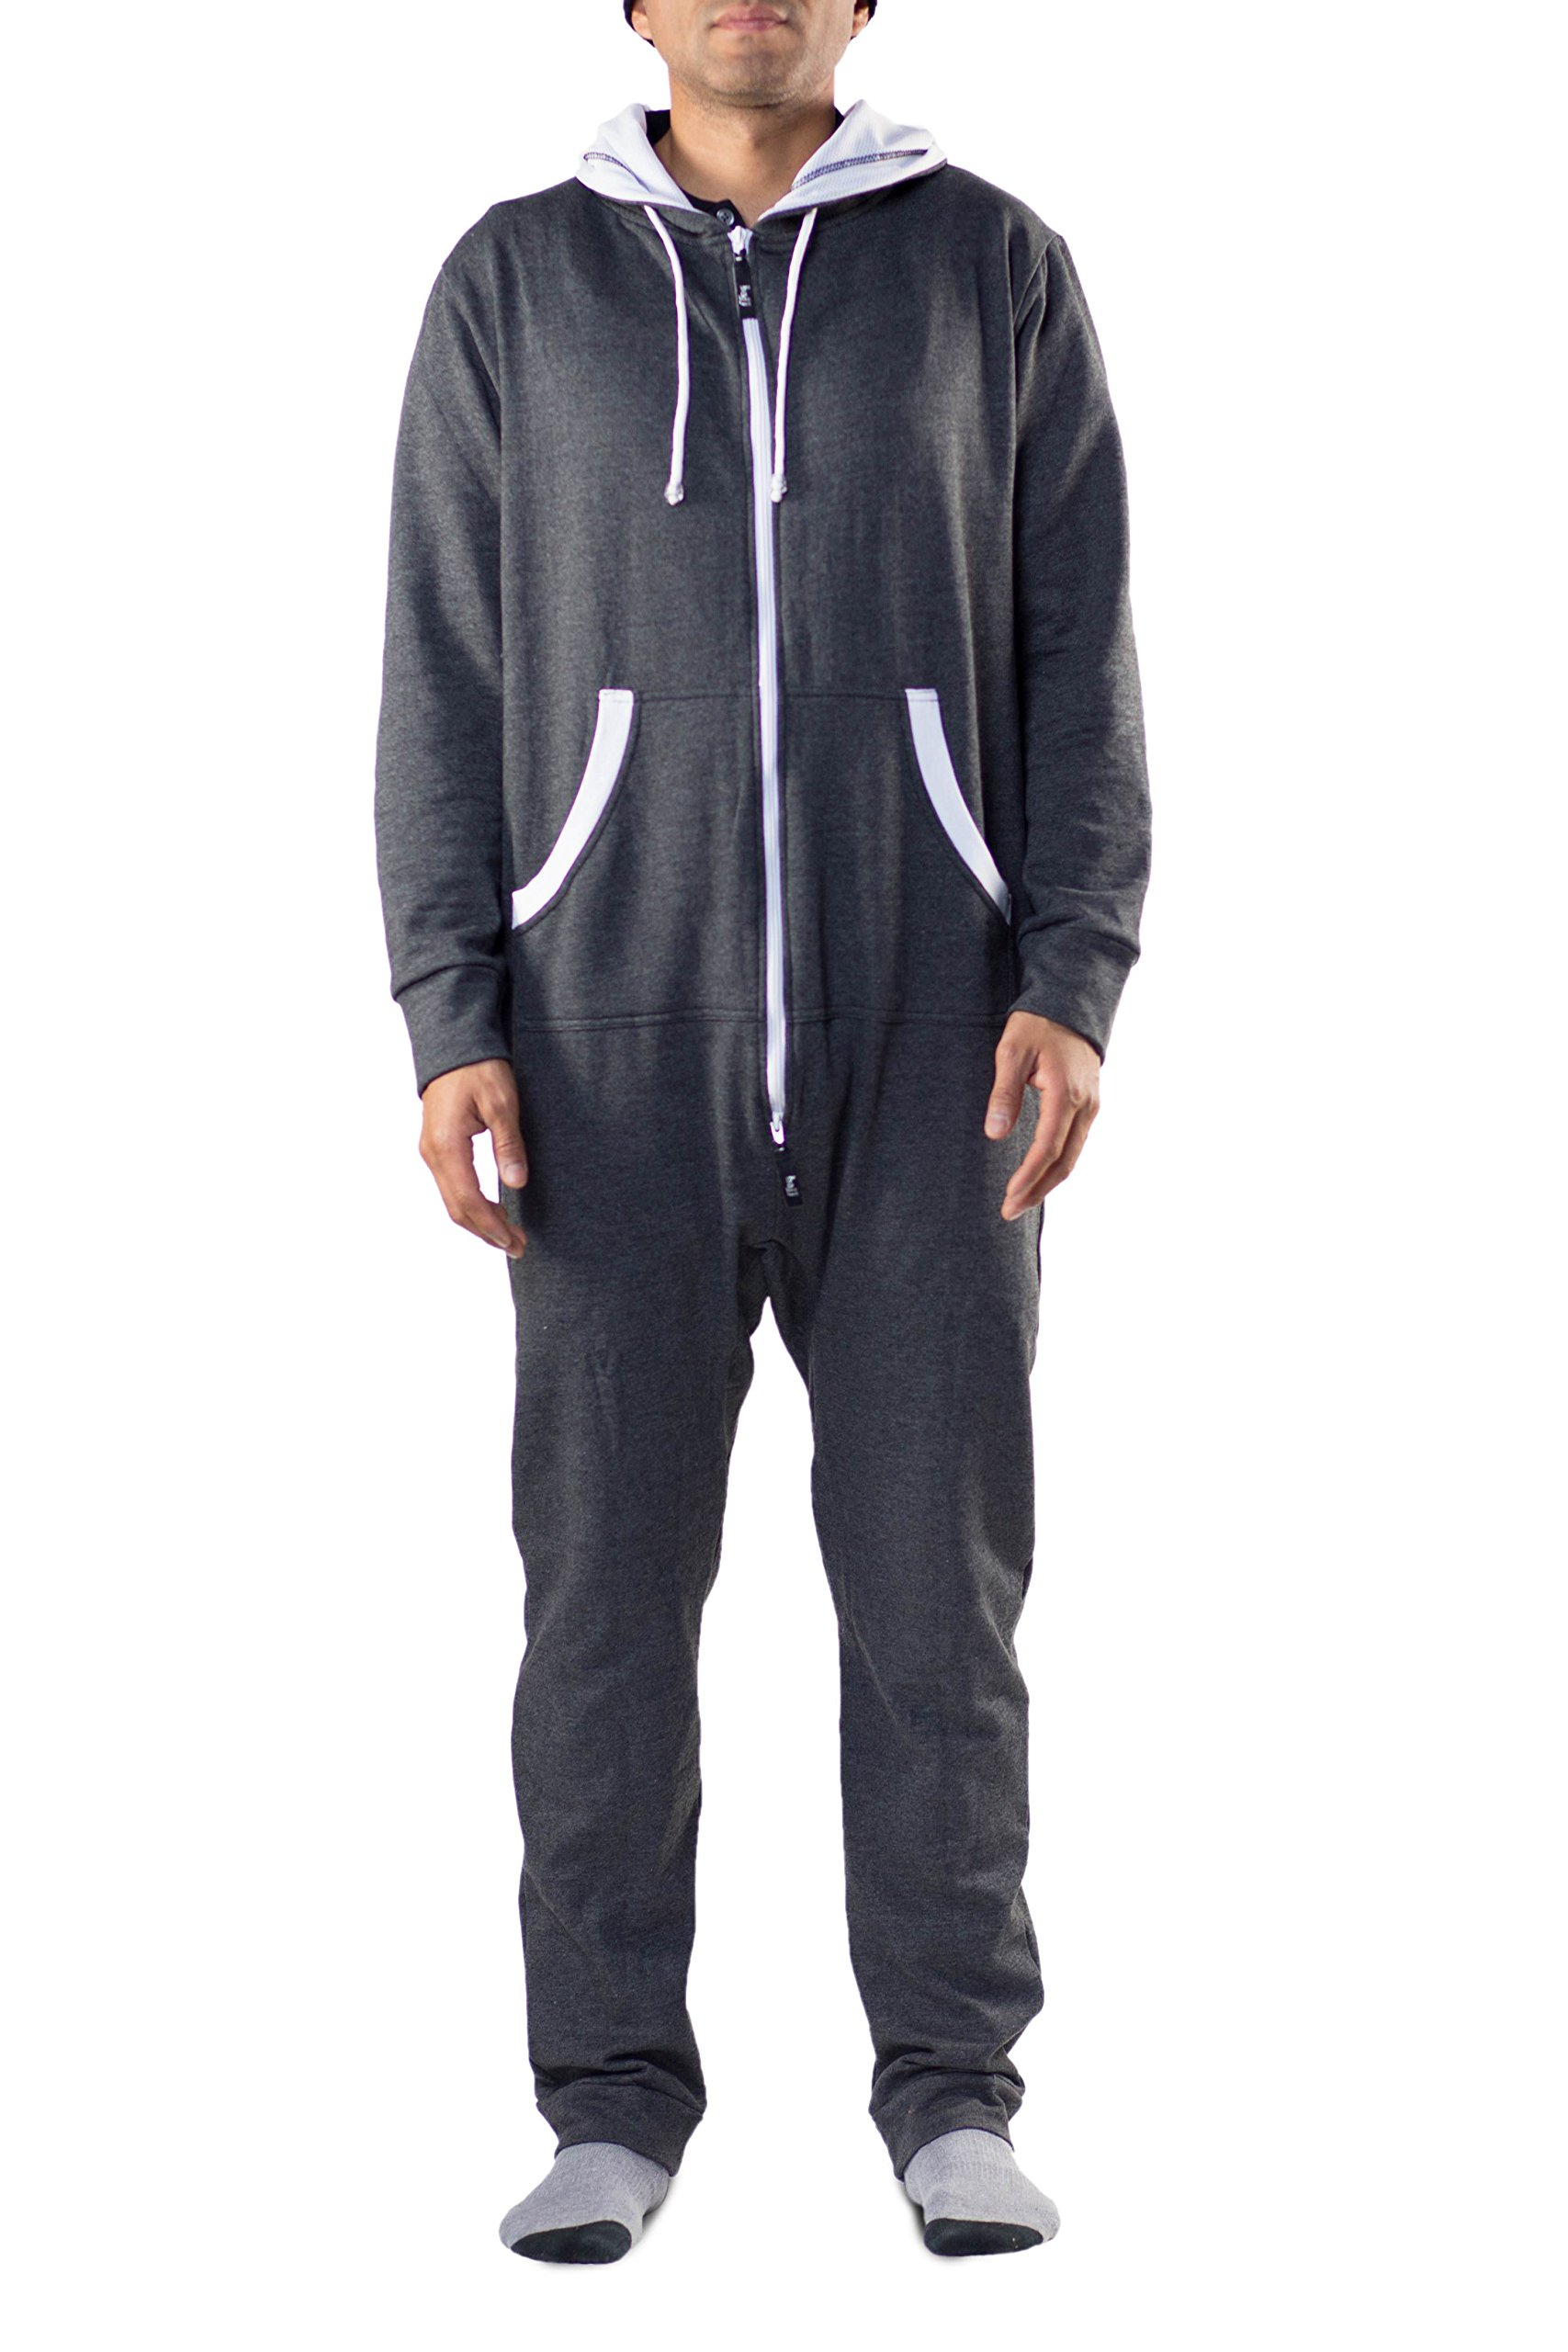 Onesie Adult Jumpsuit – One Piece Non-Footed Pajama Playsuit - Unisex